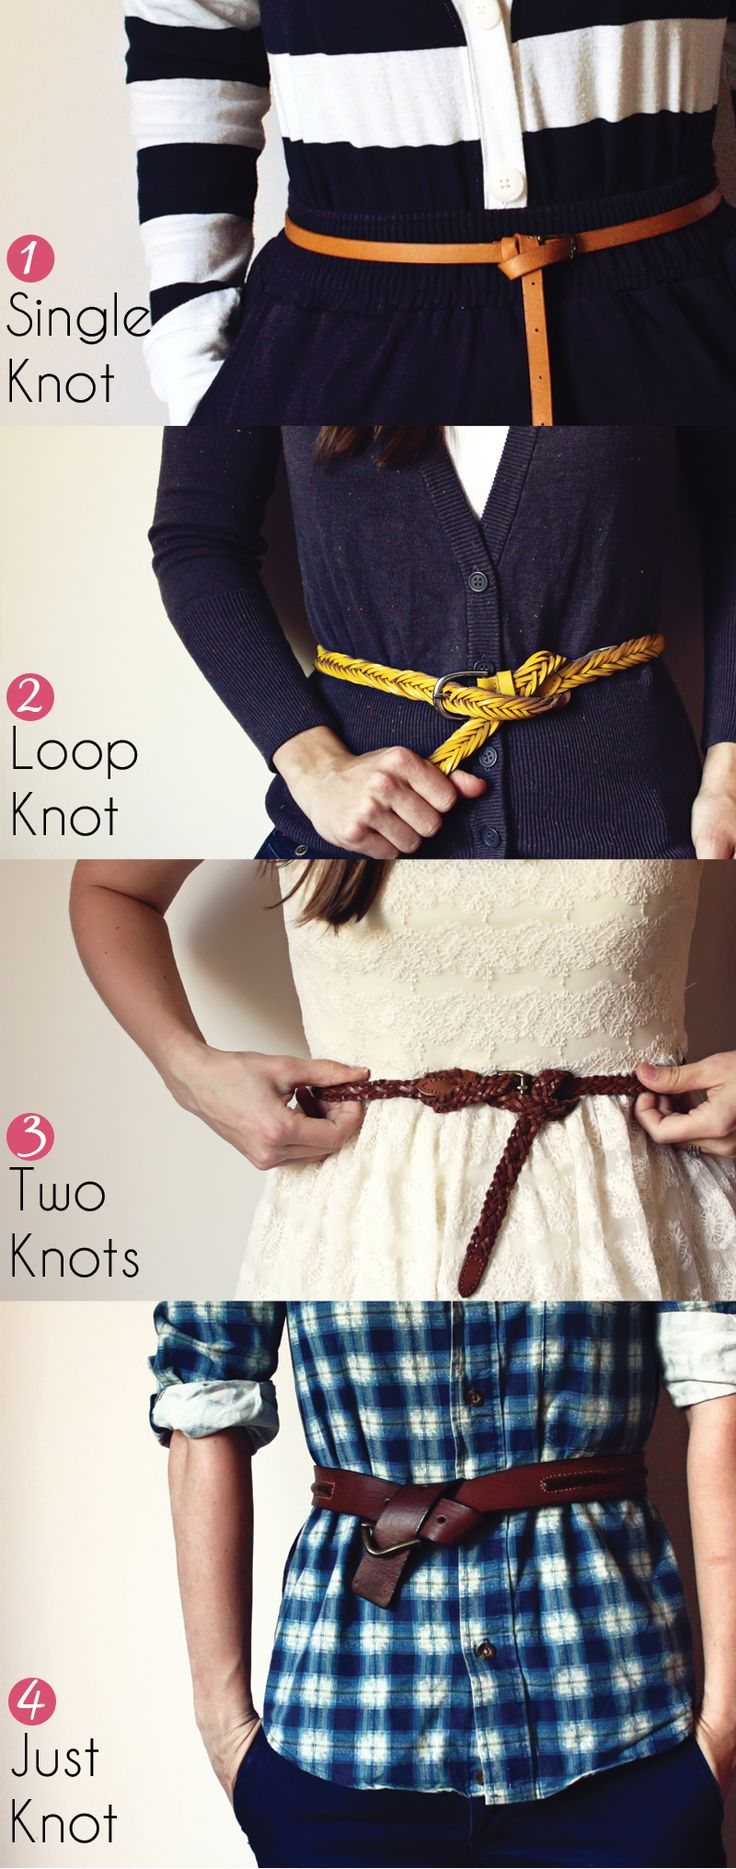 4 ways to knot a belt